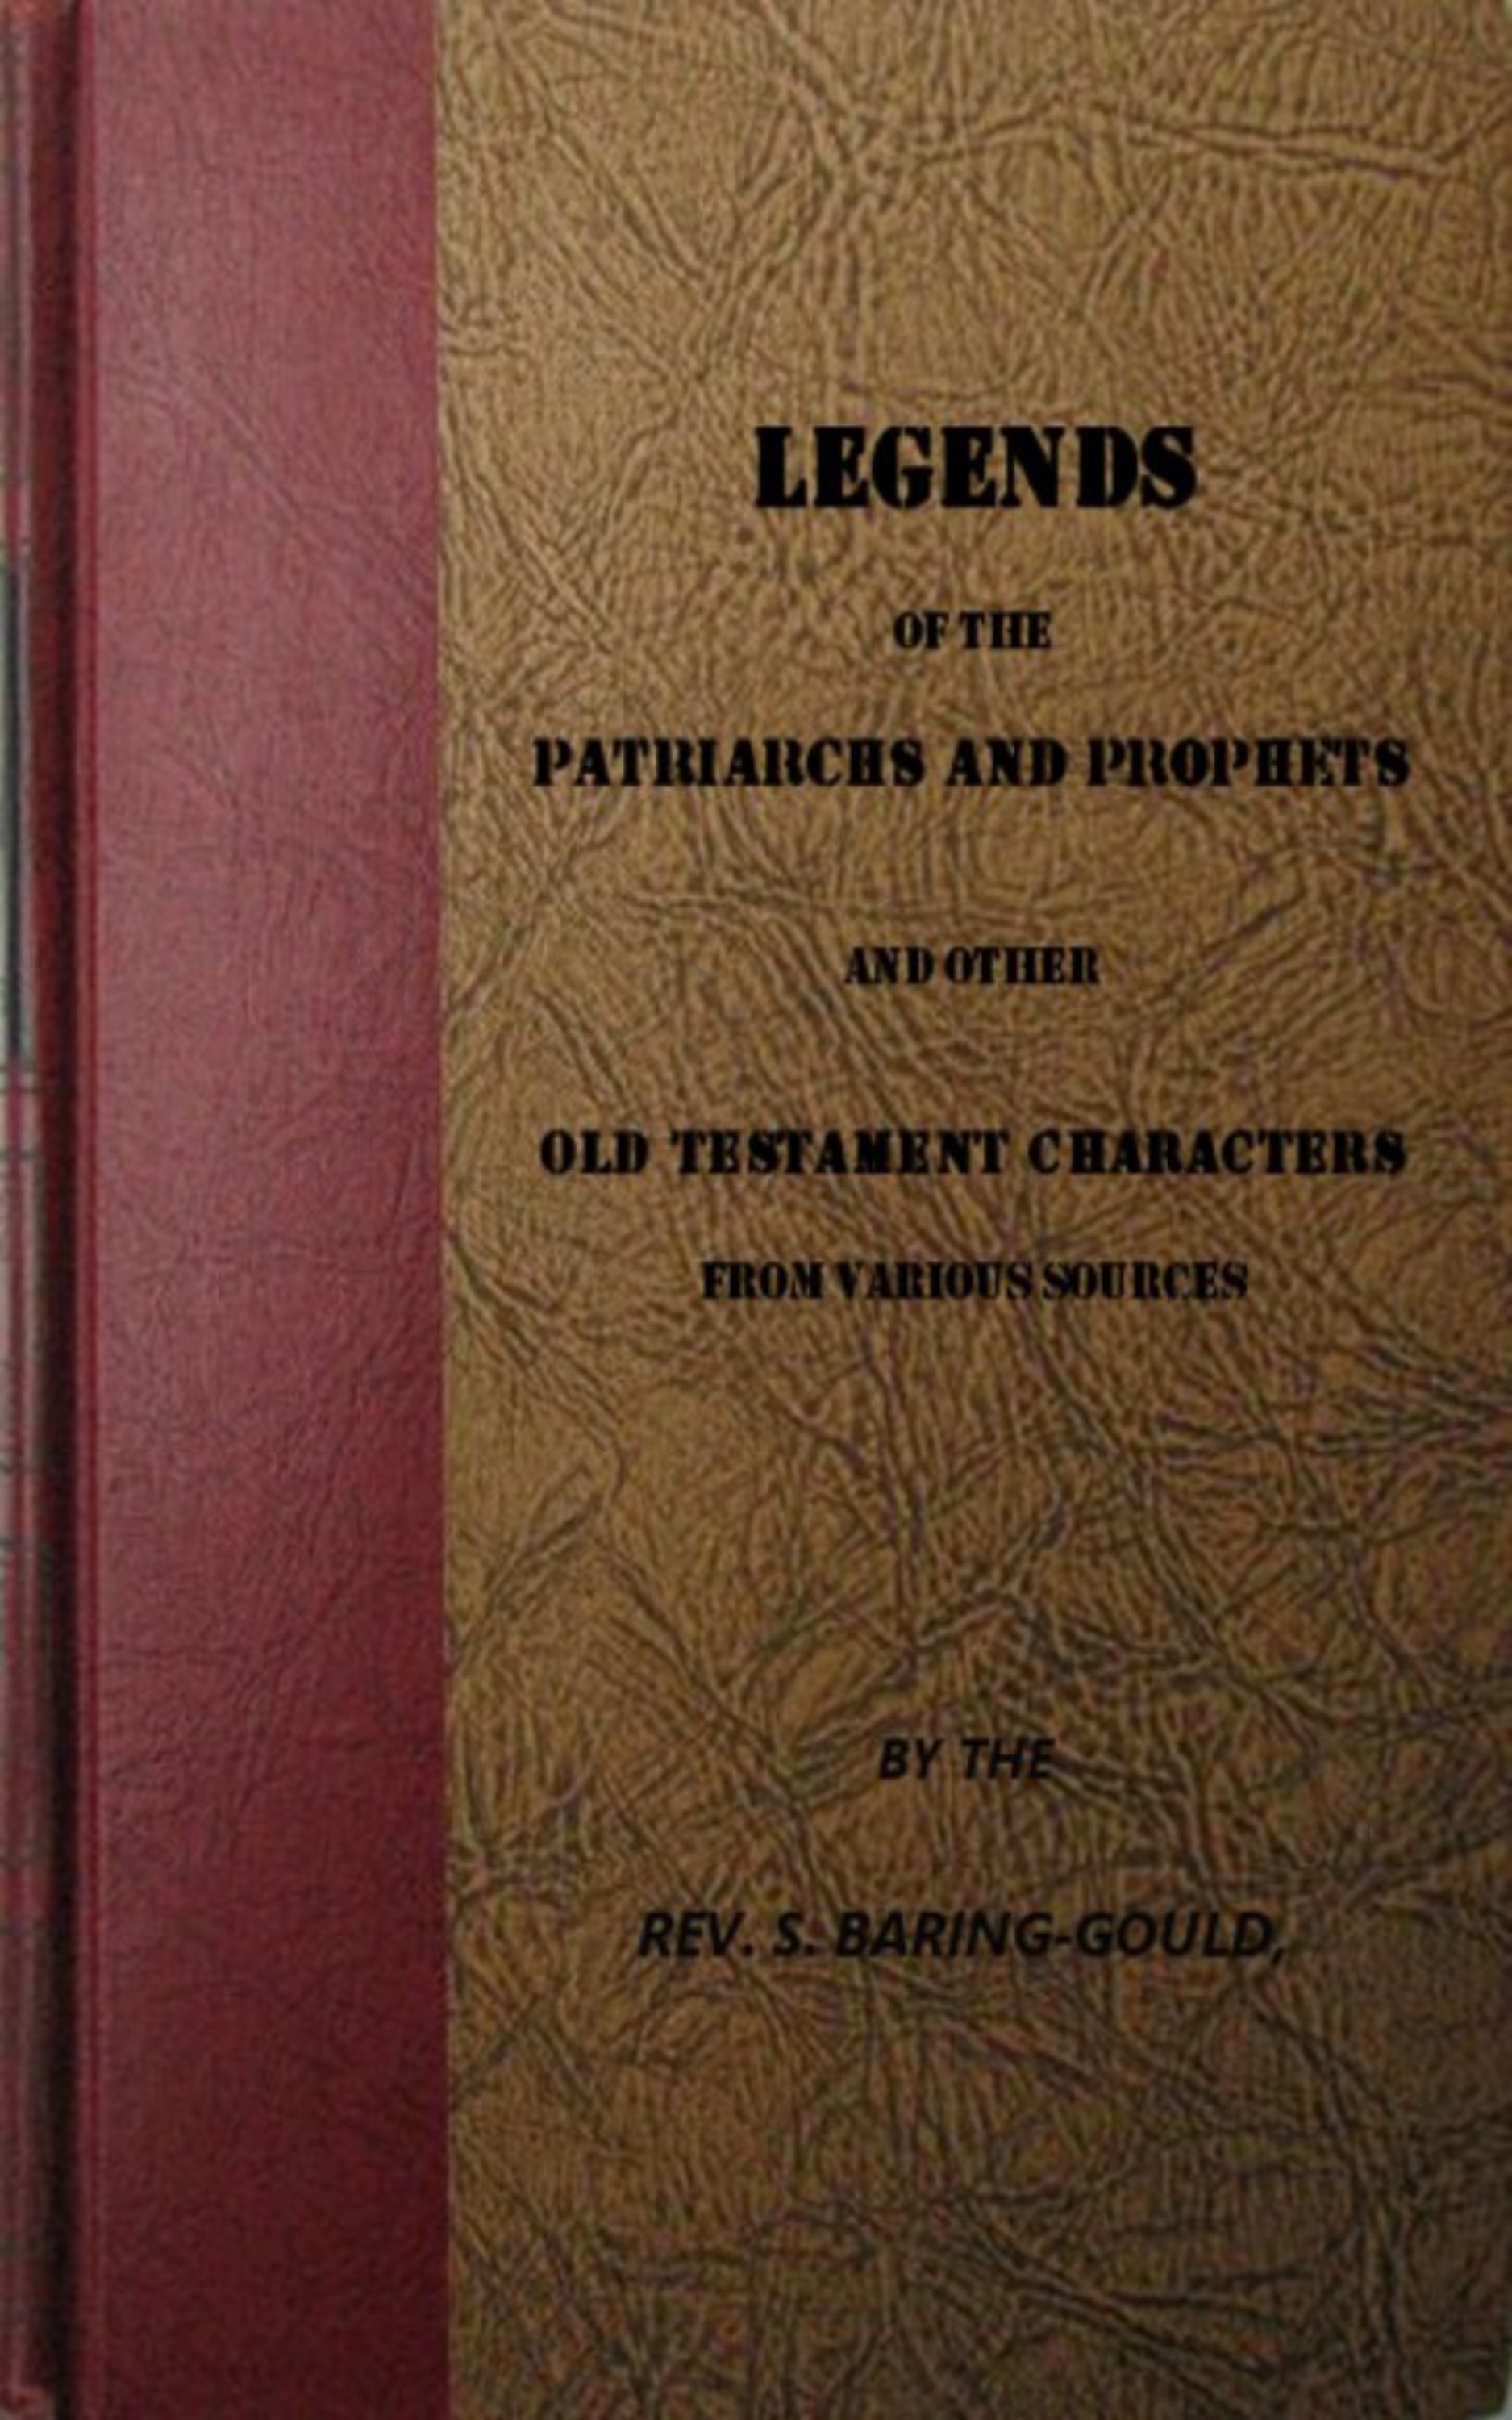 цена S. Baring-Gould Legends of the Patriarchs and Prophets and otheatacters from Various Sources онлайн в 2017 году